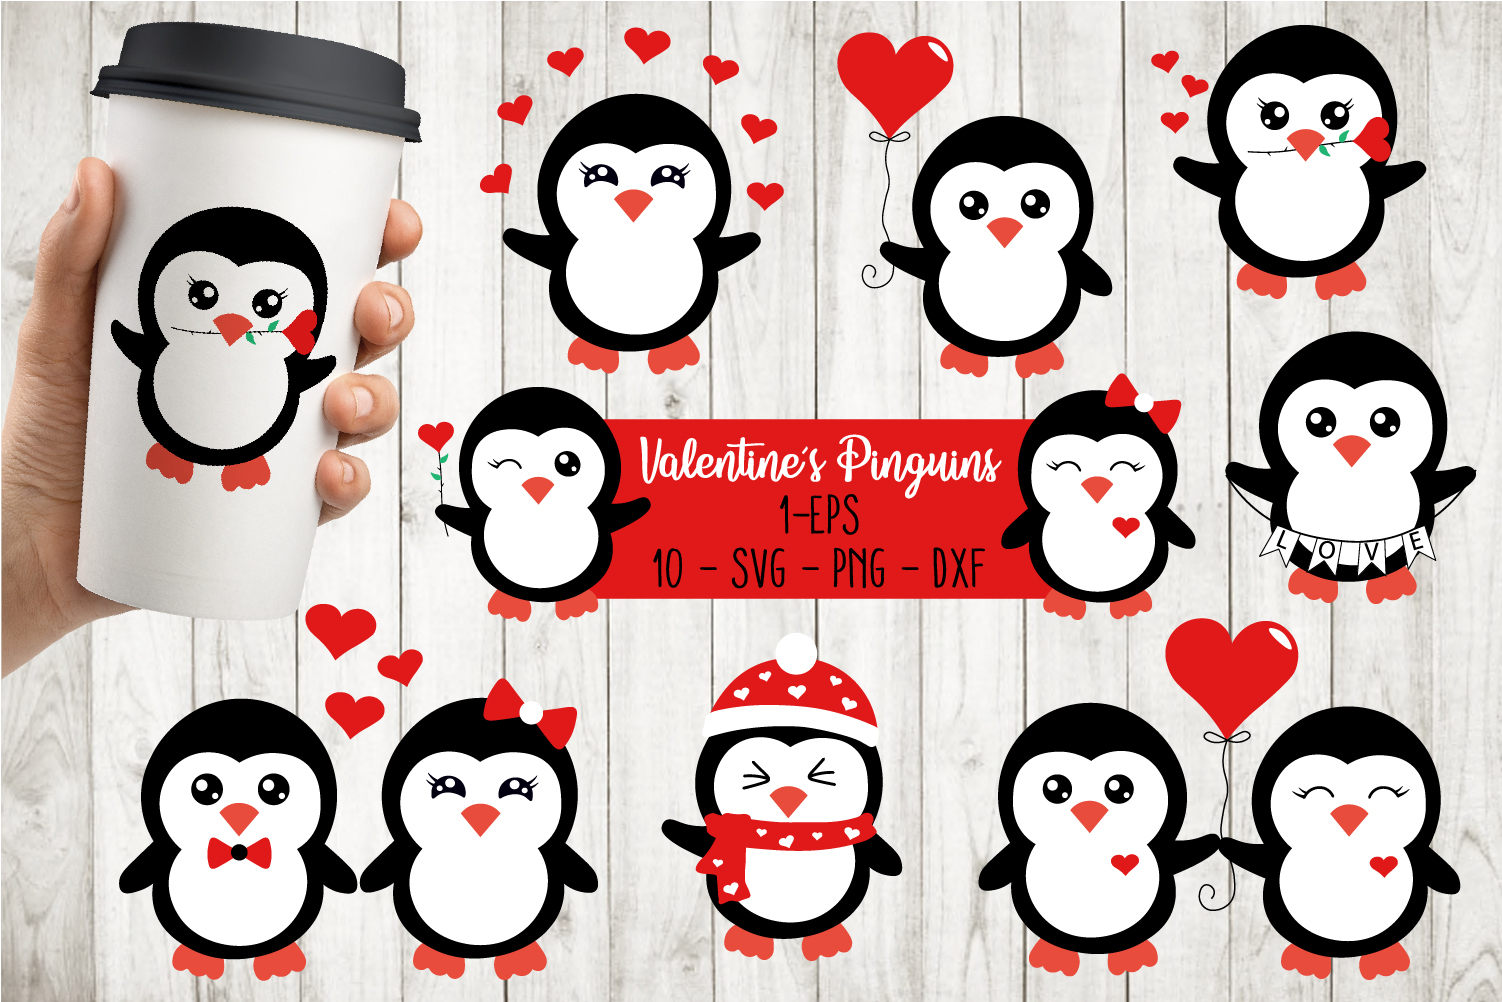 Download Free Valentine S Penguins Bundle Graphic By All About Svg Creative for Cricut Explore, Silhouette and other cutting machines.